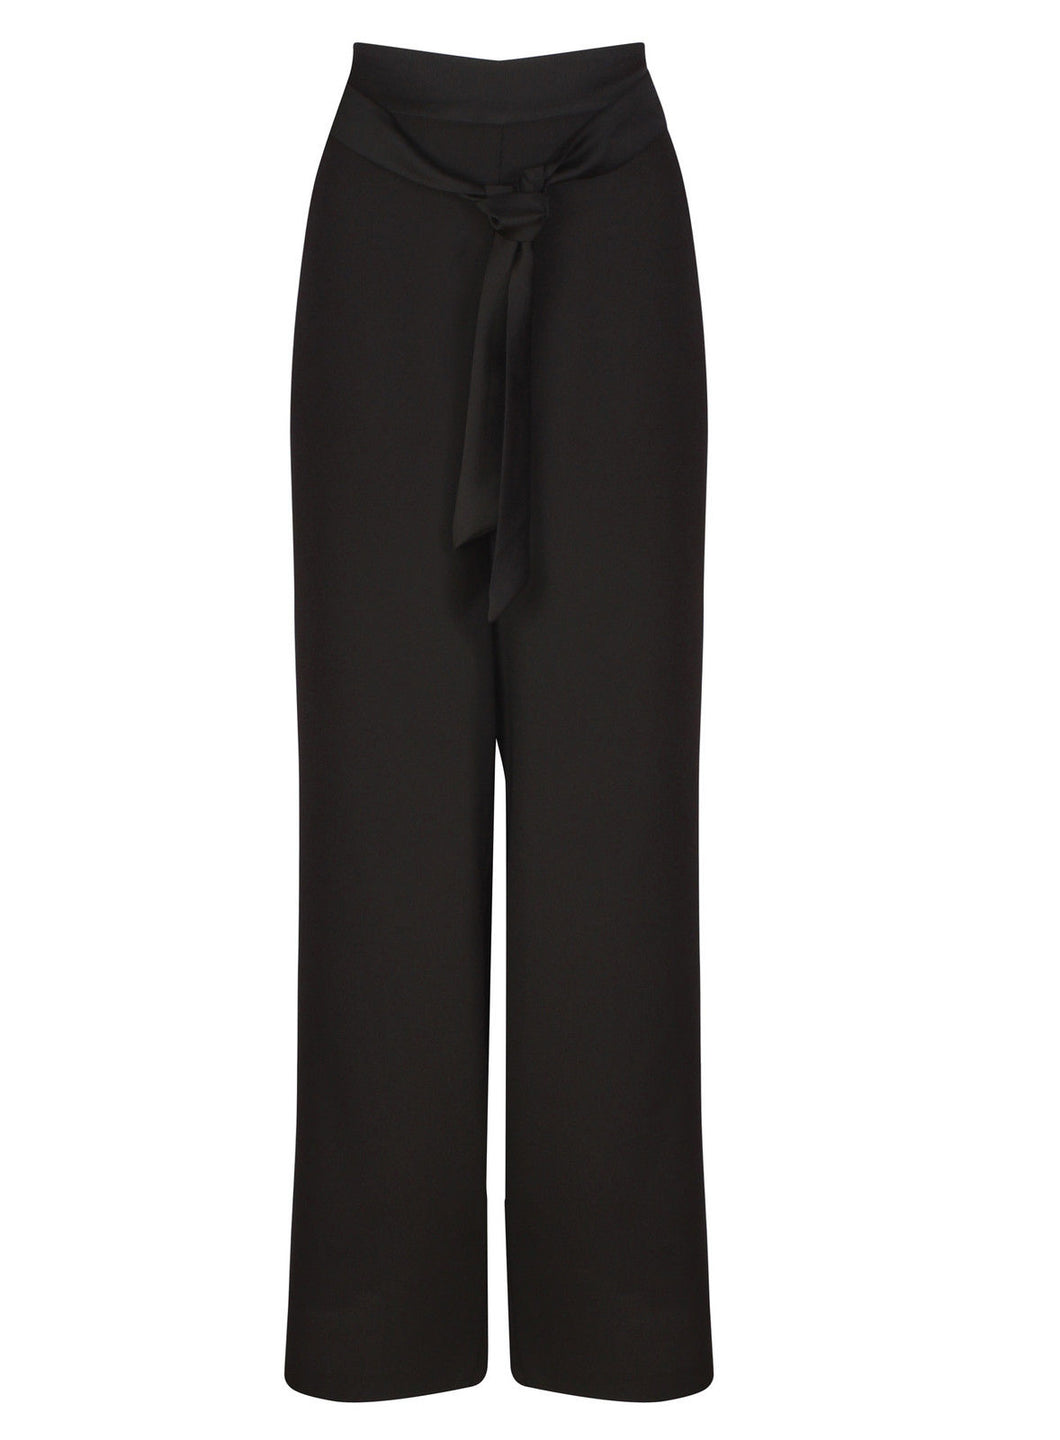 Ex Marks And Spencer Black Trousers With Satin Trim And Belt